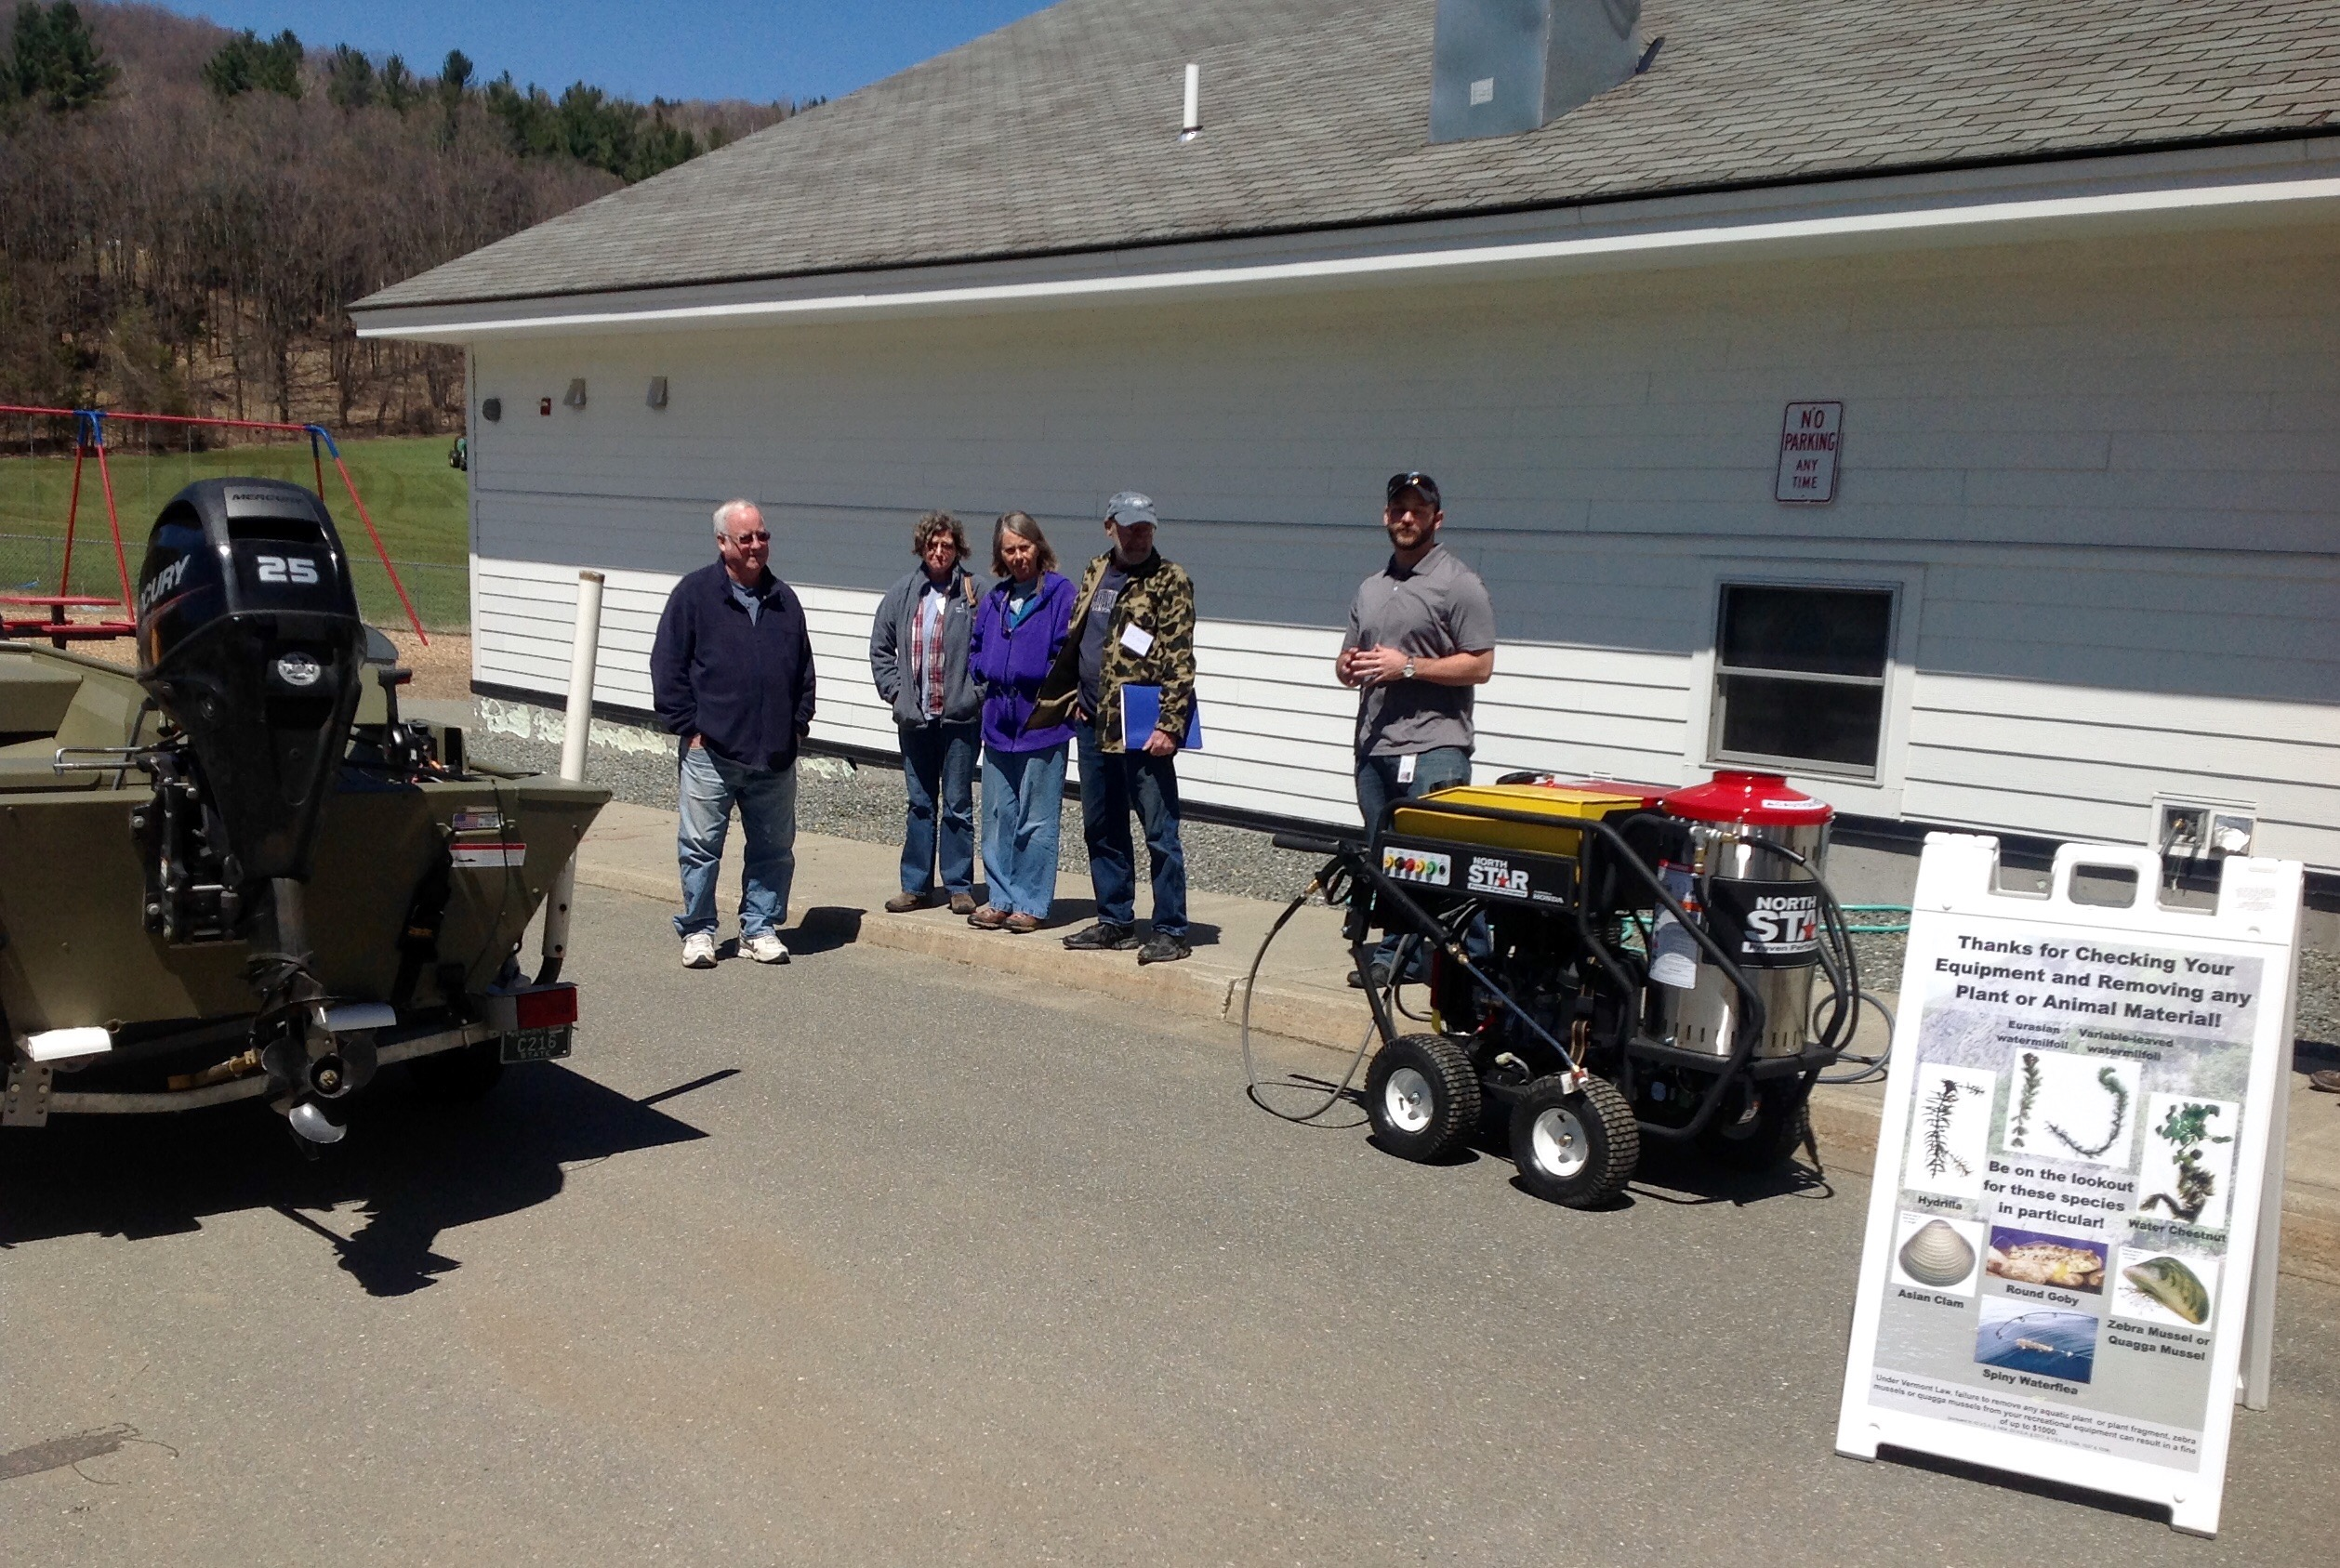 In April 2016 the SLA hosted a boat wash greeter training workshop where VTDEC demonstrated this mobile hot water pressure washer purchased for about $3,500.